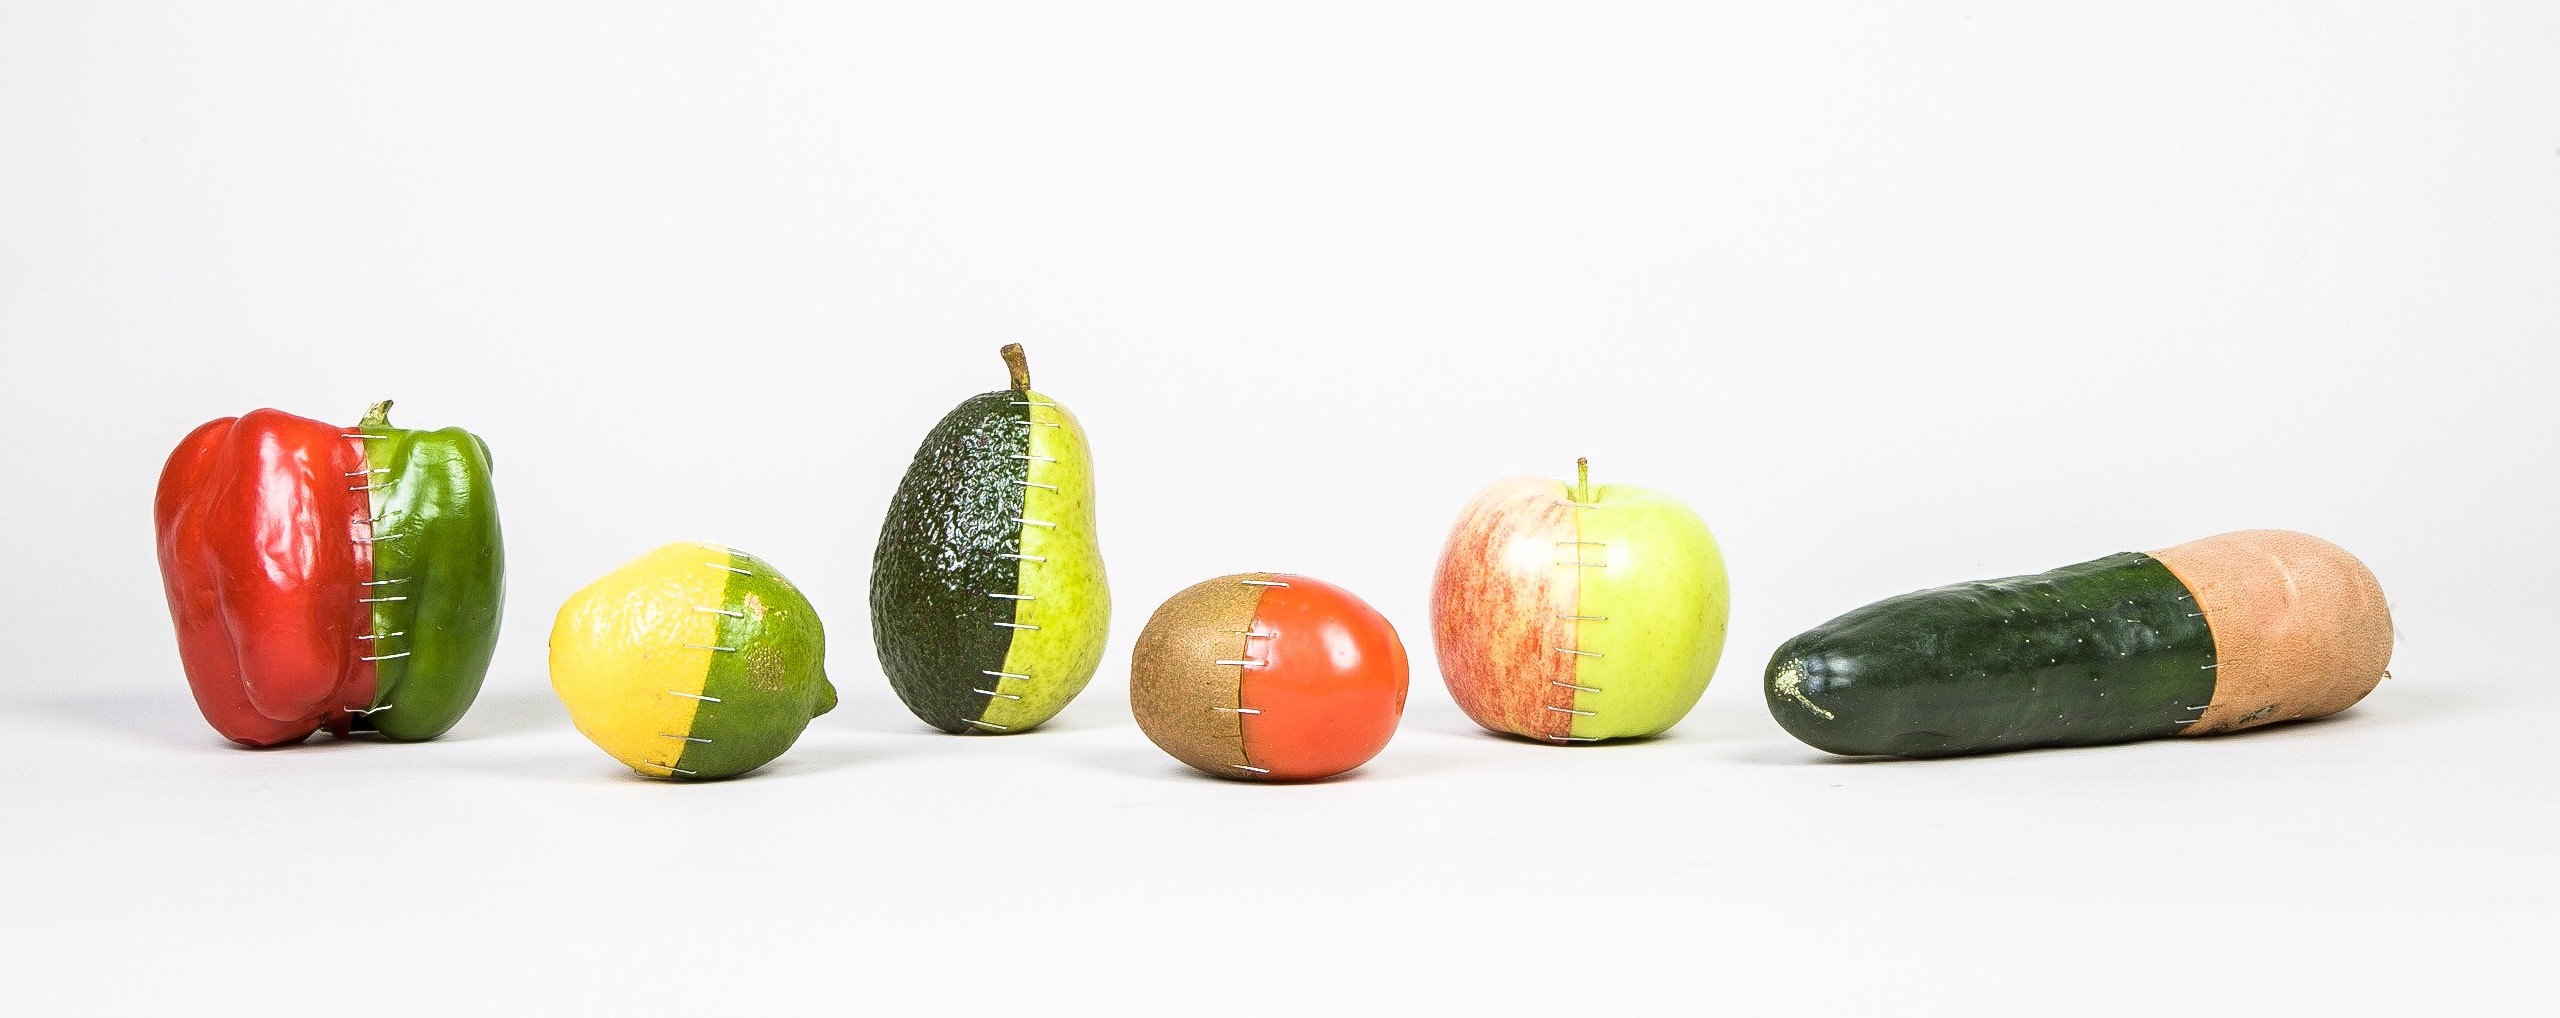 A collection of fruits and vegetables that have been cut in half and stapled back together differently, appearing like 2-part wholes of different items.